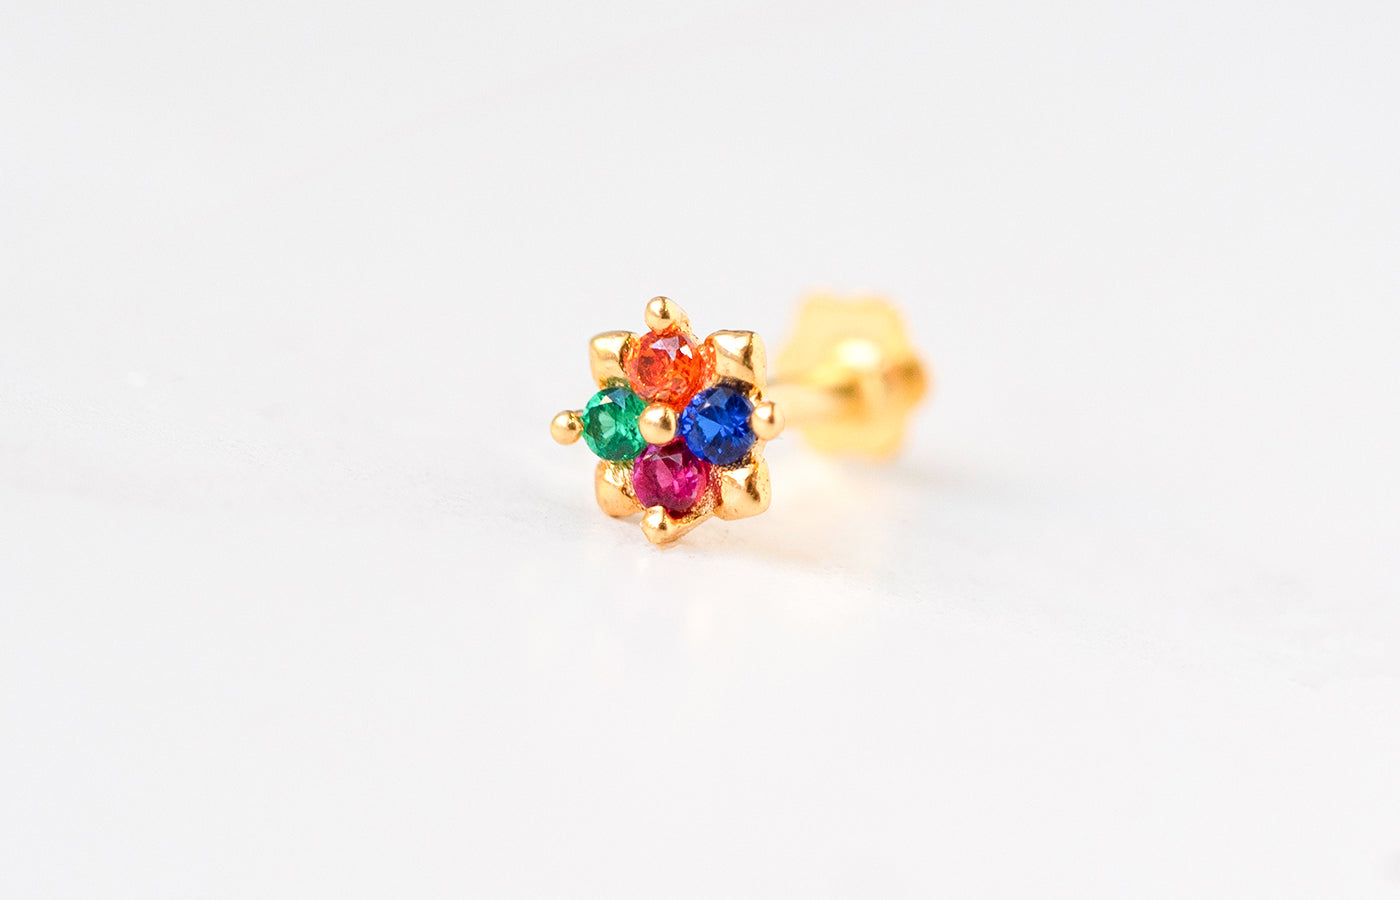 18ct Yellow Gold Screw Back Nose Stud set with Multi-Coloured Cubic Zirconias NIP-4-320f